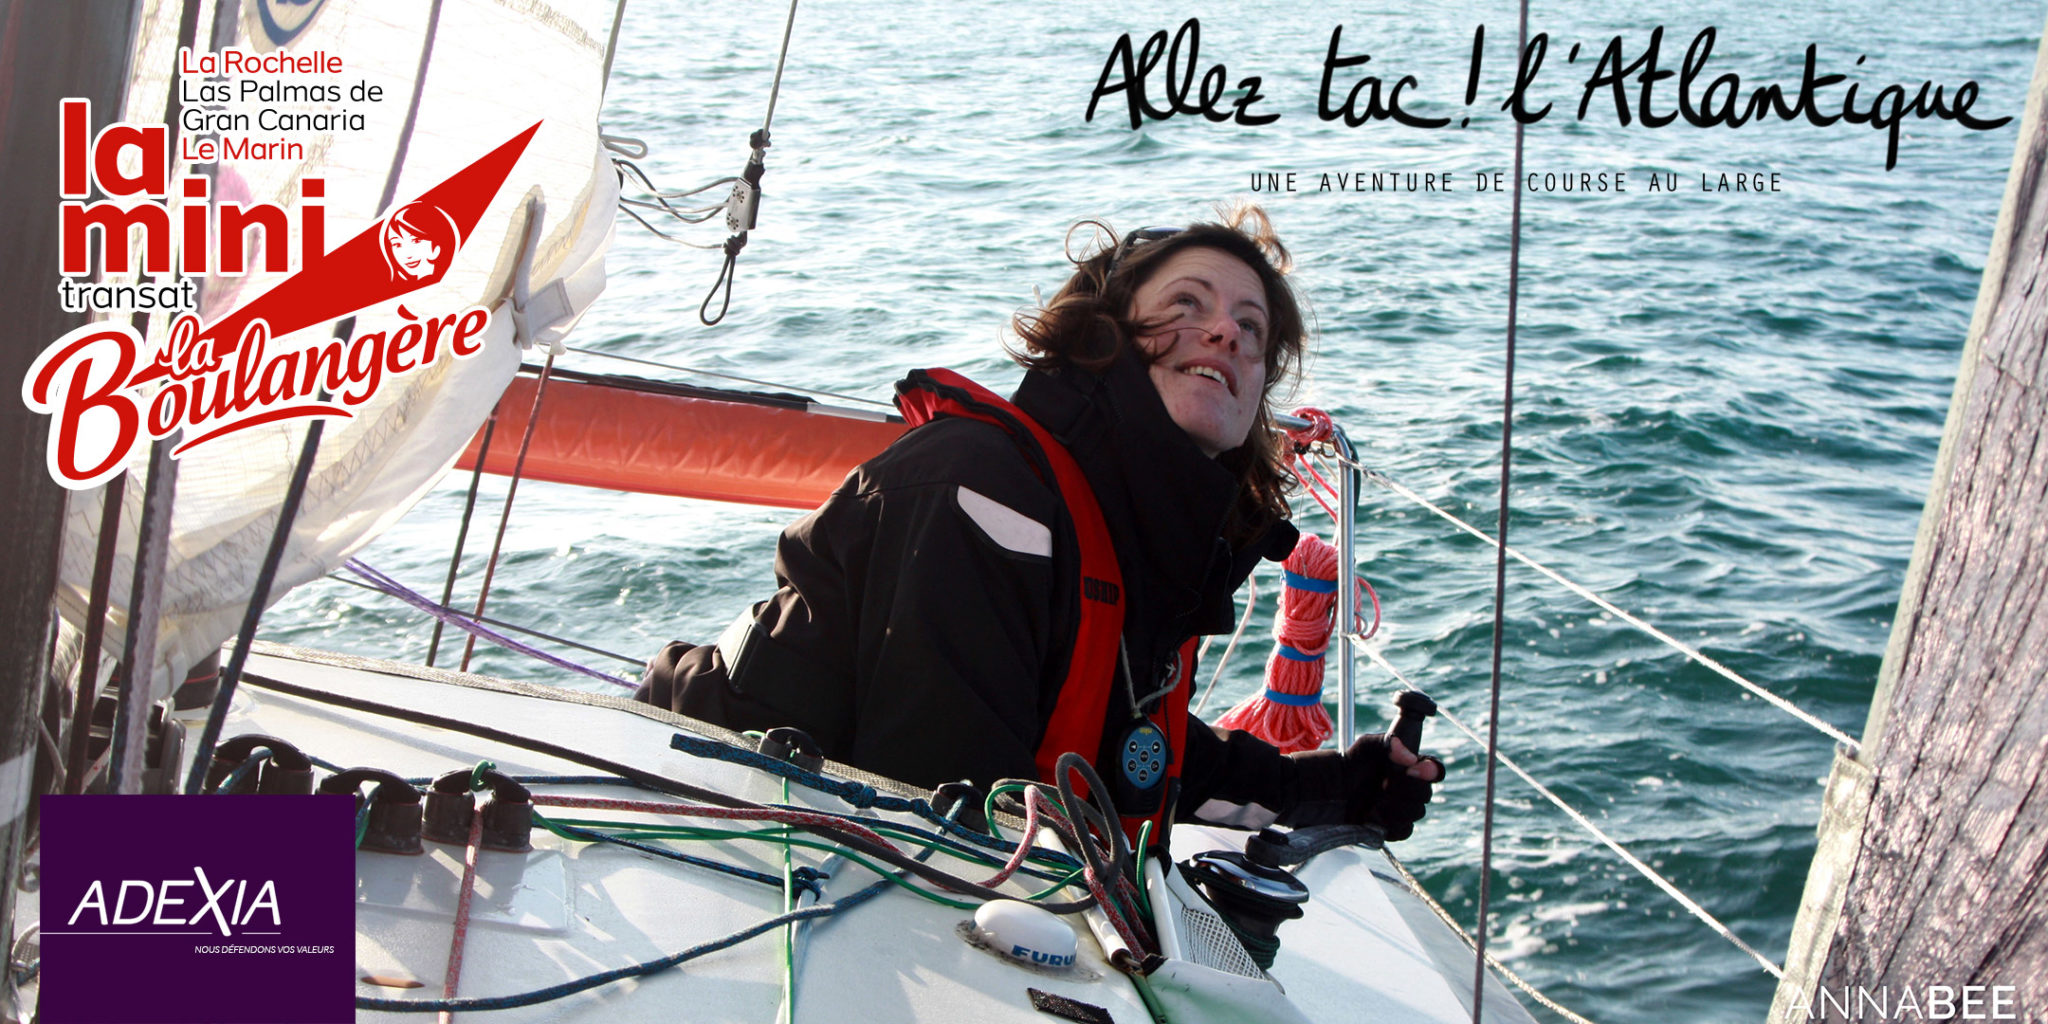 mini transat camille taque adexia syndic gestion